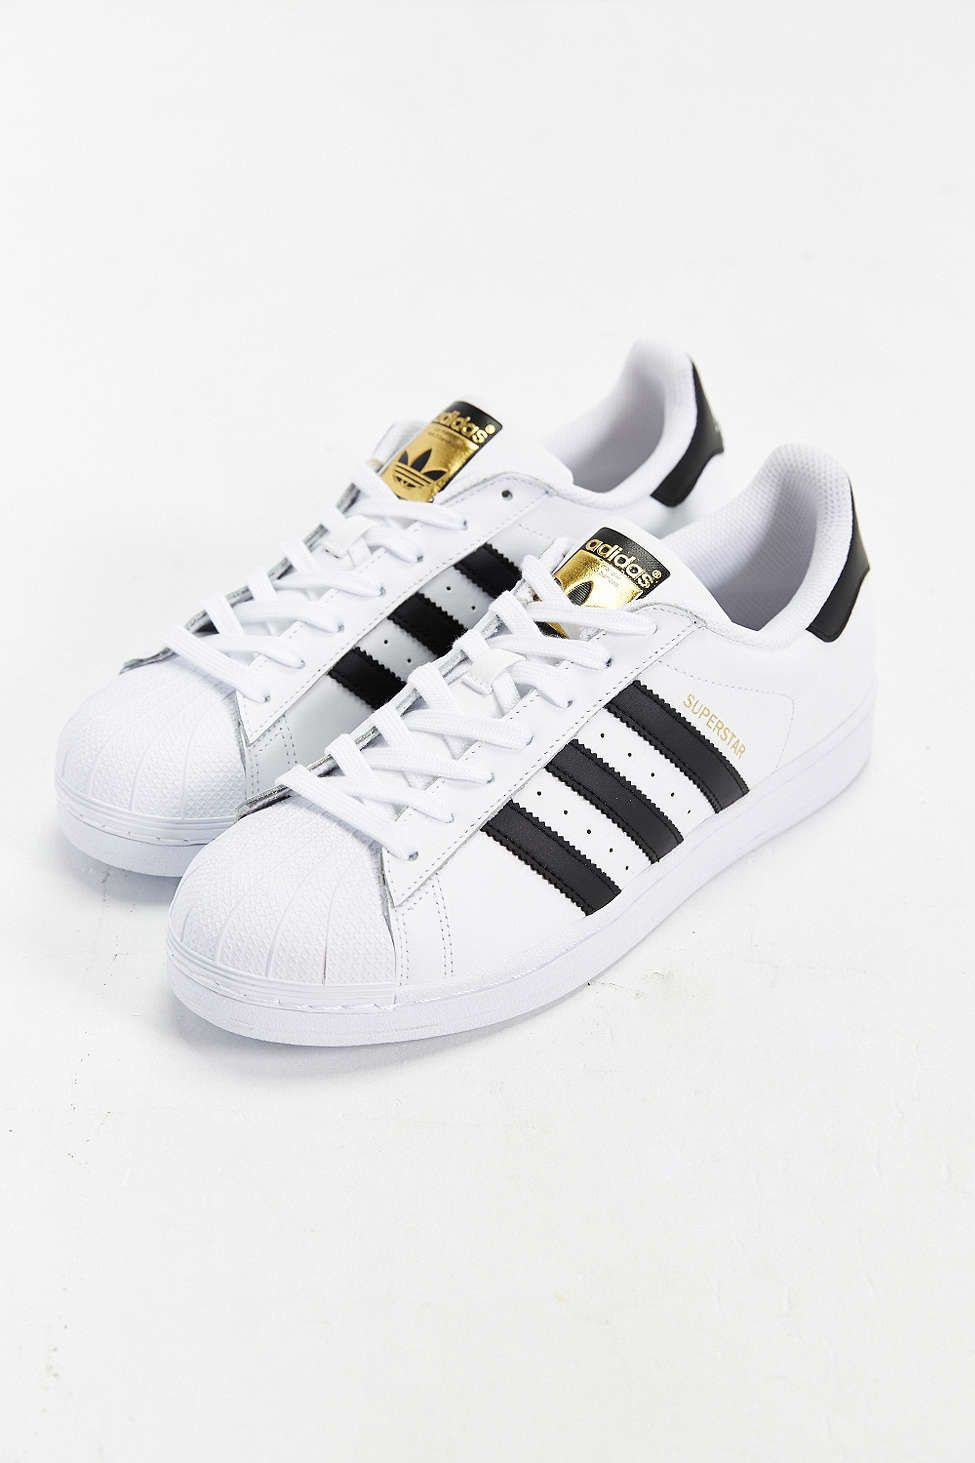 separation shoes 97f95 5d8c4 Shop adidas Originals Superstar Foundation Sneaker at Urban Outfitters  today.